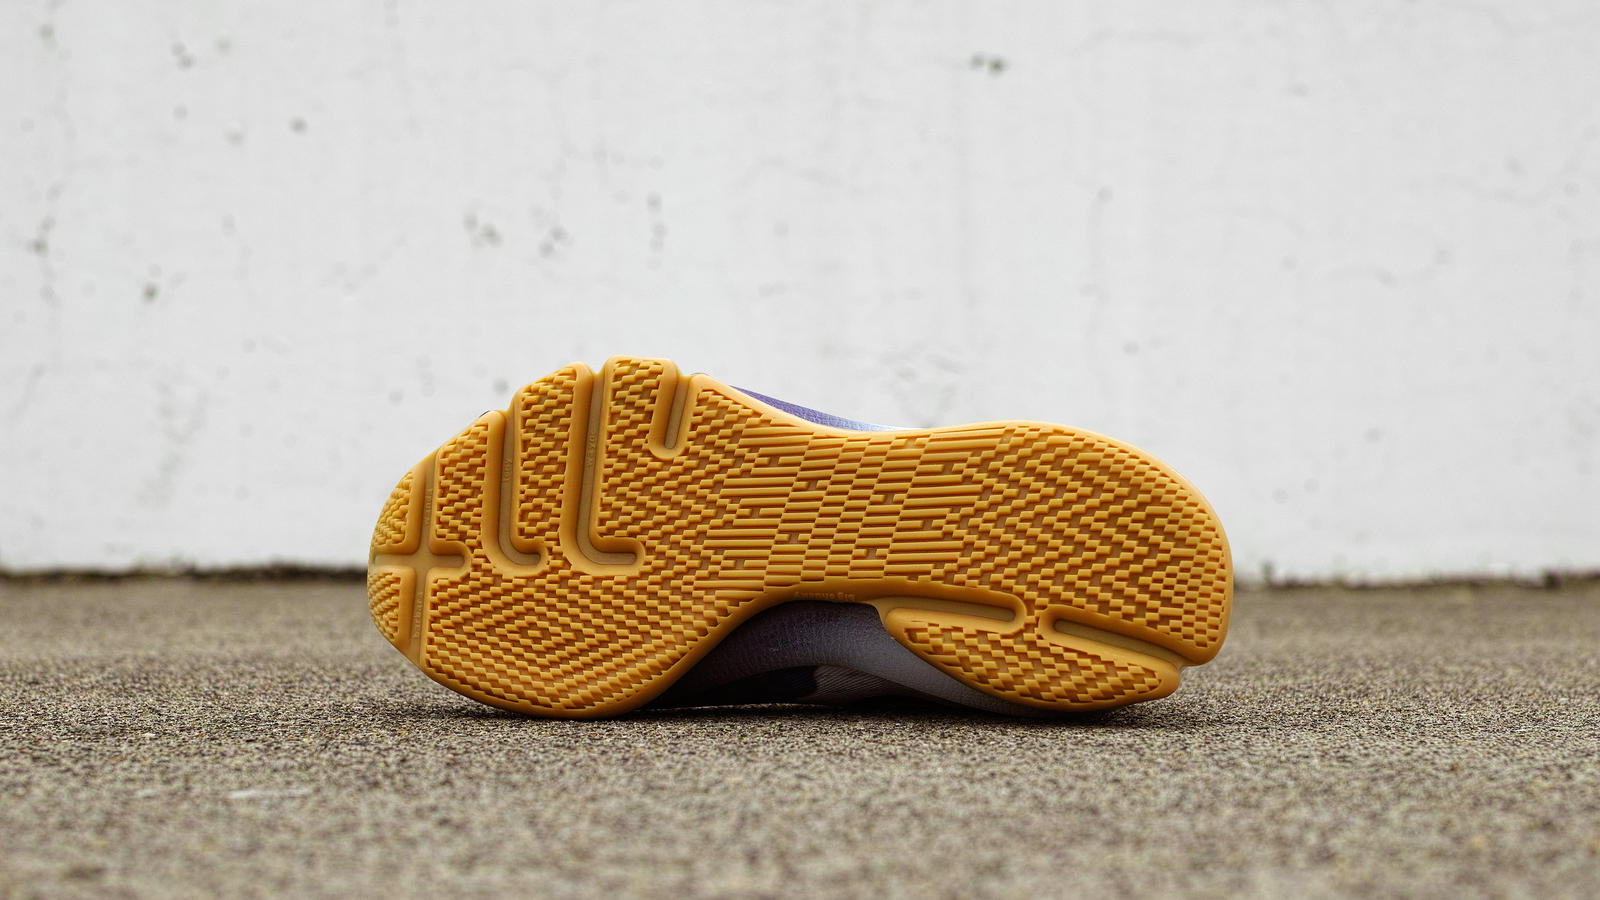 Kd purple ya outsole hd 1600